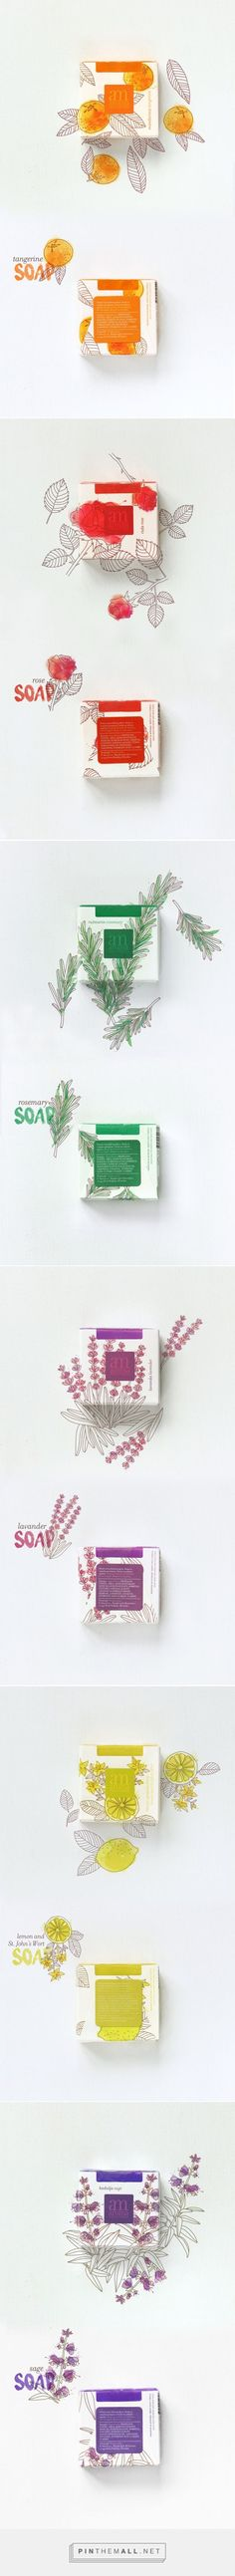 Aroma Mediterranea soaps — The Dieline - Branding & Packaging